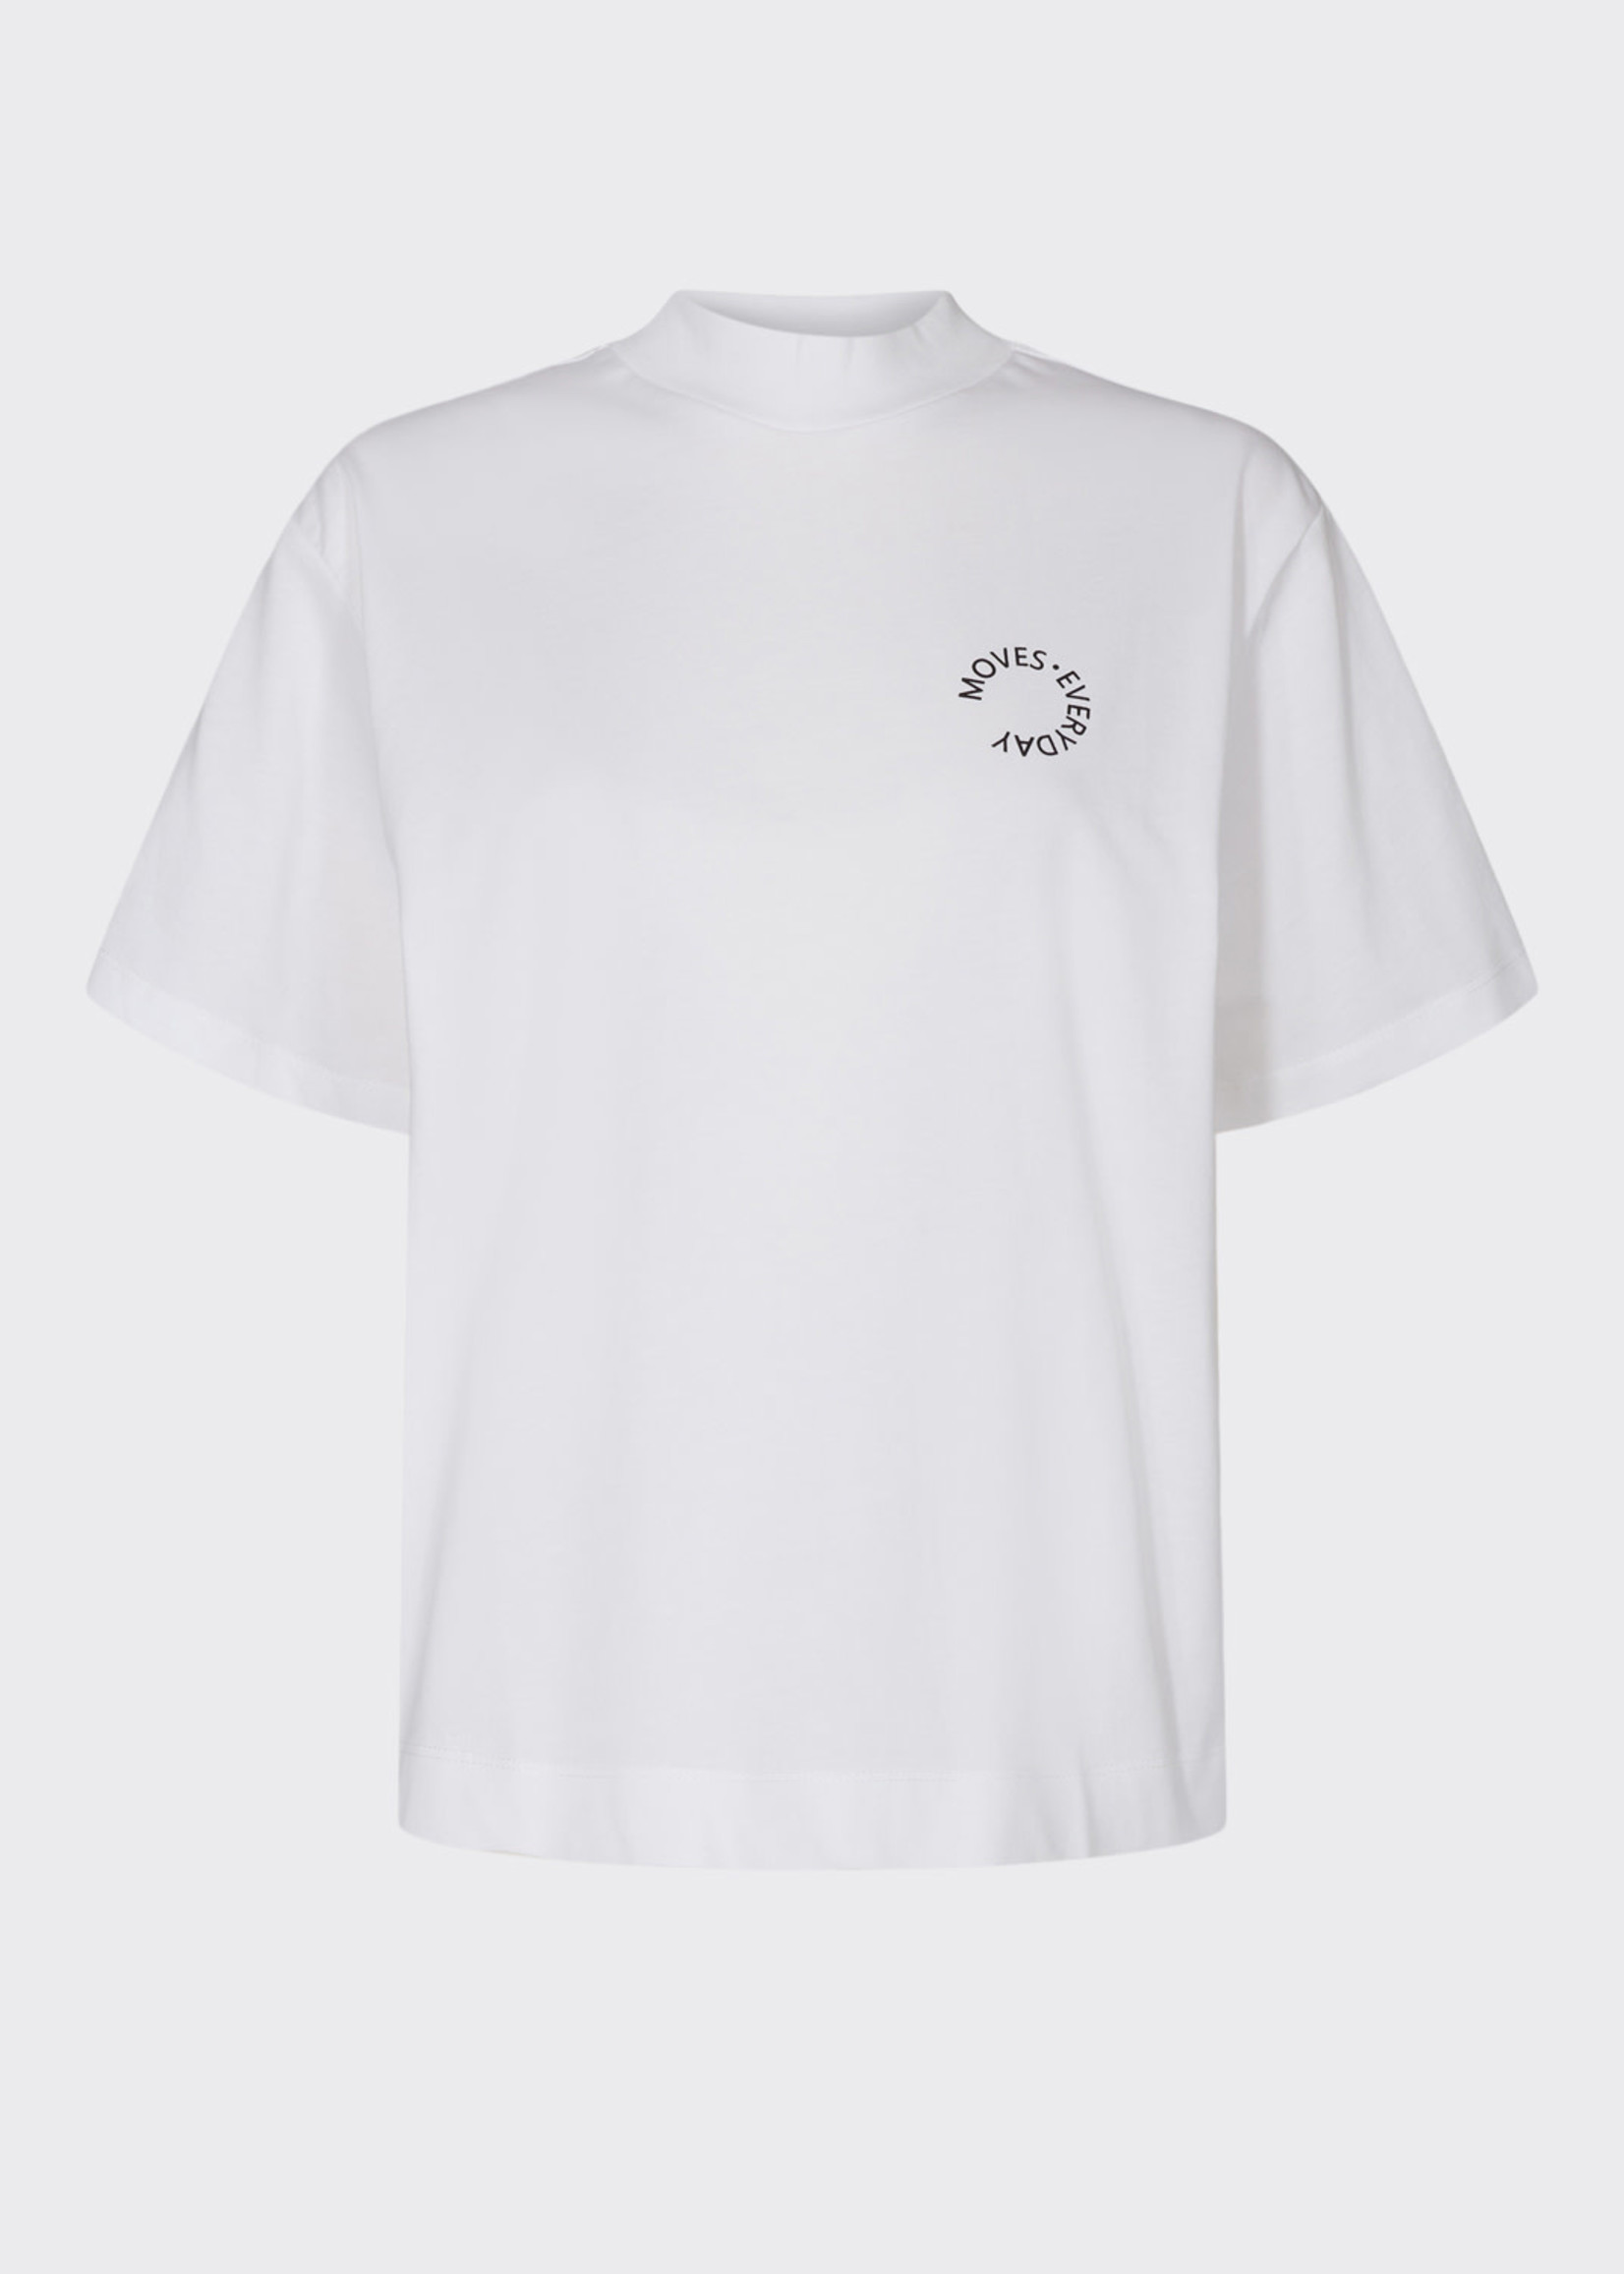 MOVES MOVES, T-SHIRT SIELLA, WIT